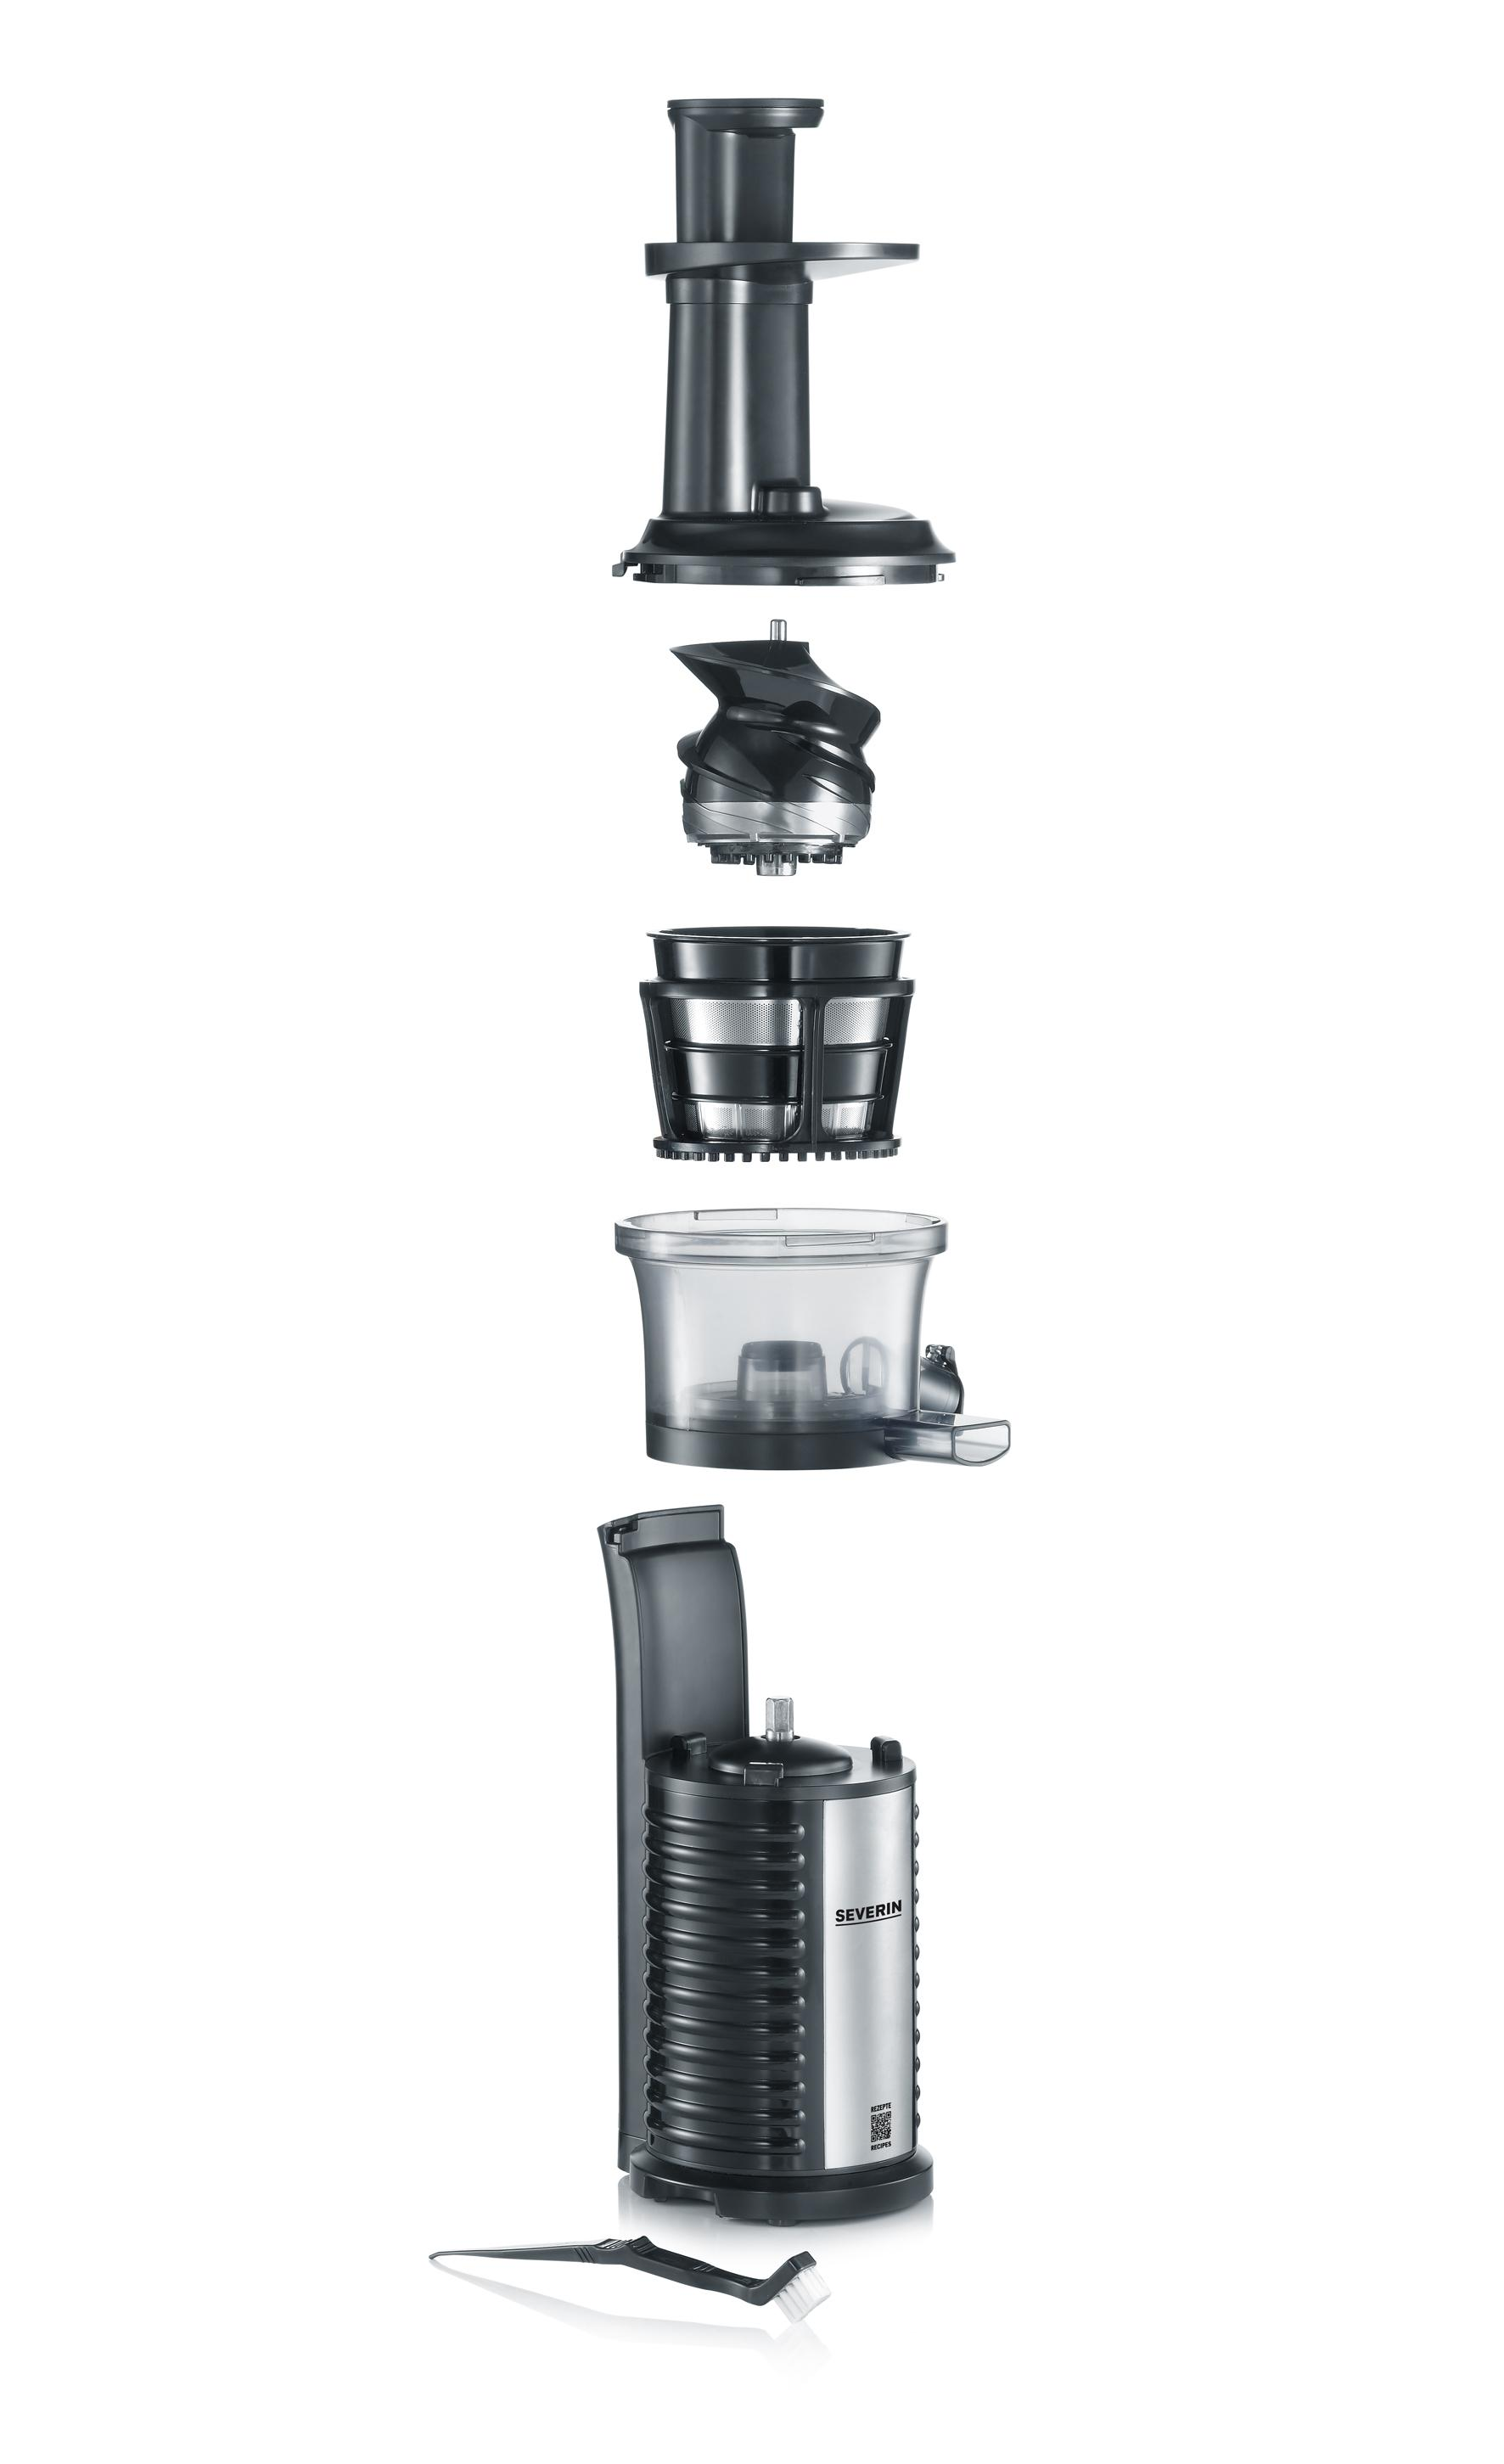 Severin Slow Juicer Es 3569 Test : Severin ES 3569 Slow Juicer Estrattore di Succo senza Lame, BPA free: Amazon.it: Casa e cucina